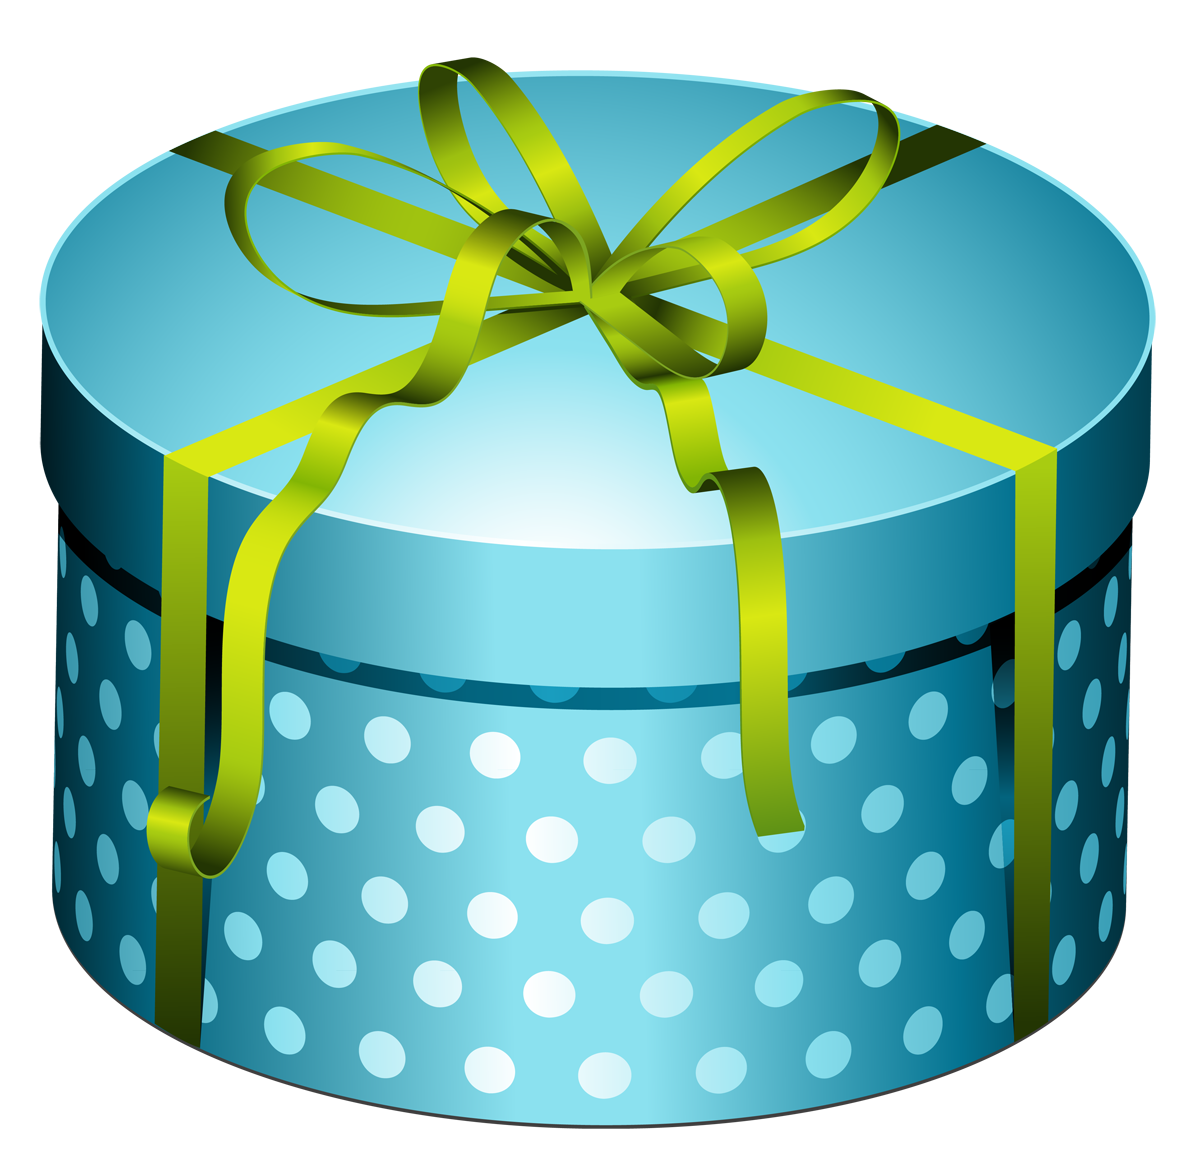 Blue round present box. Boxes clipart happy birthday